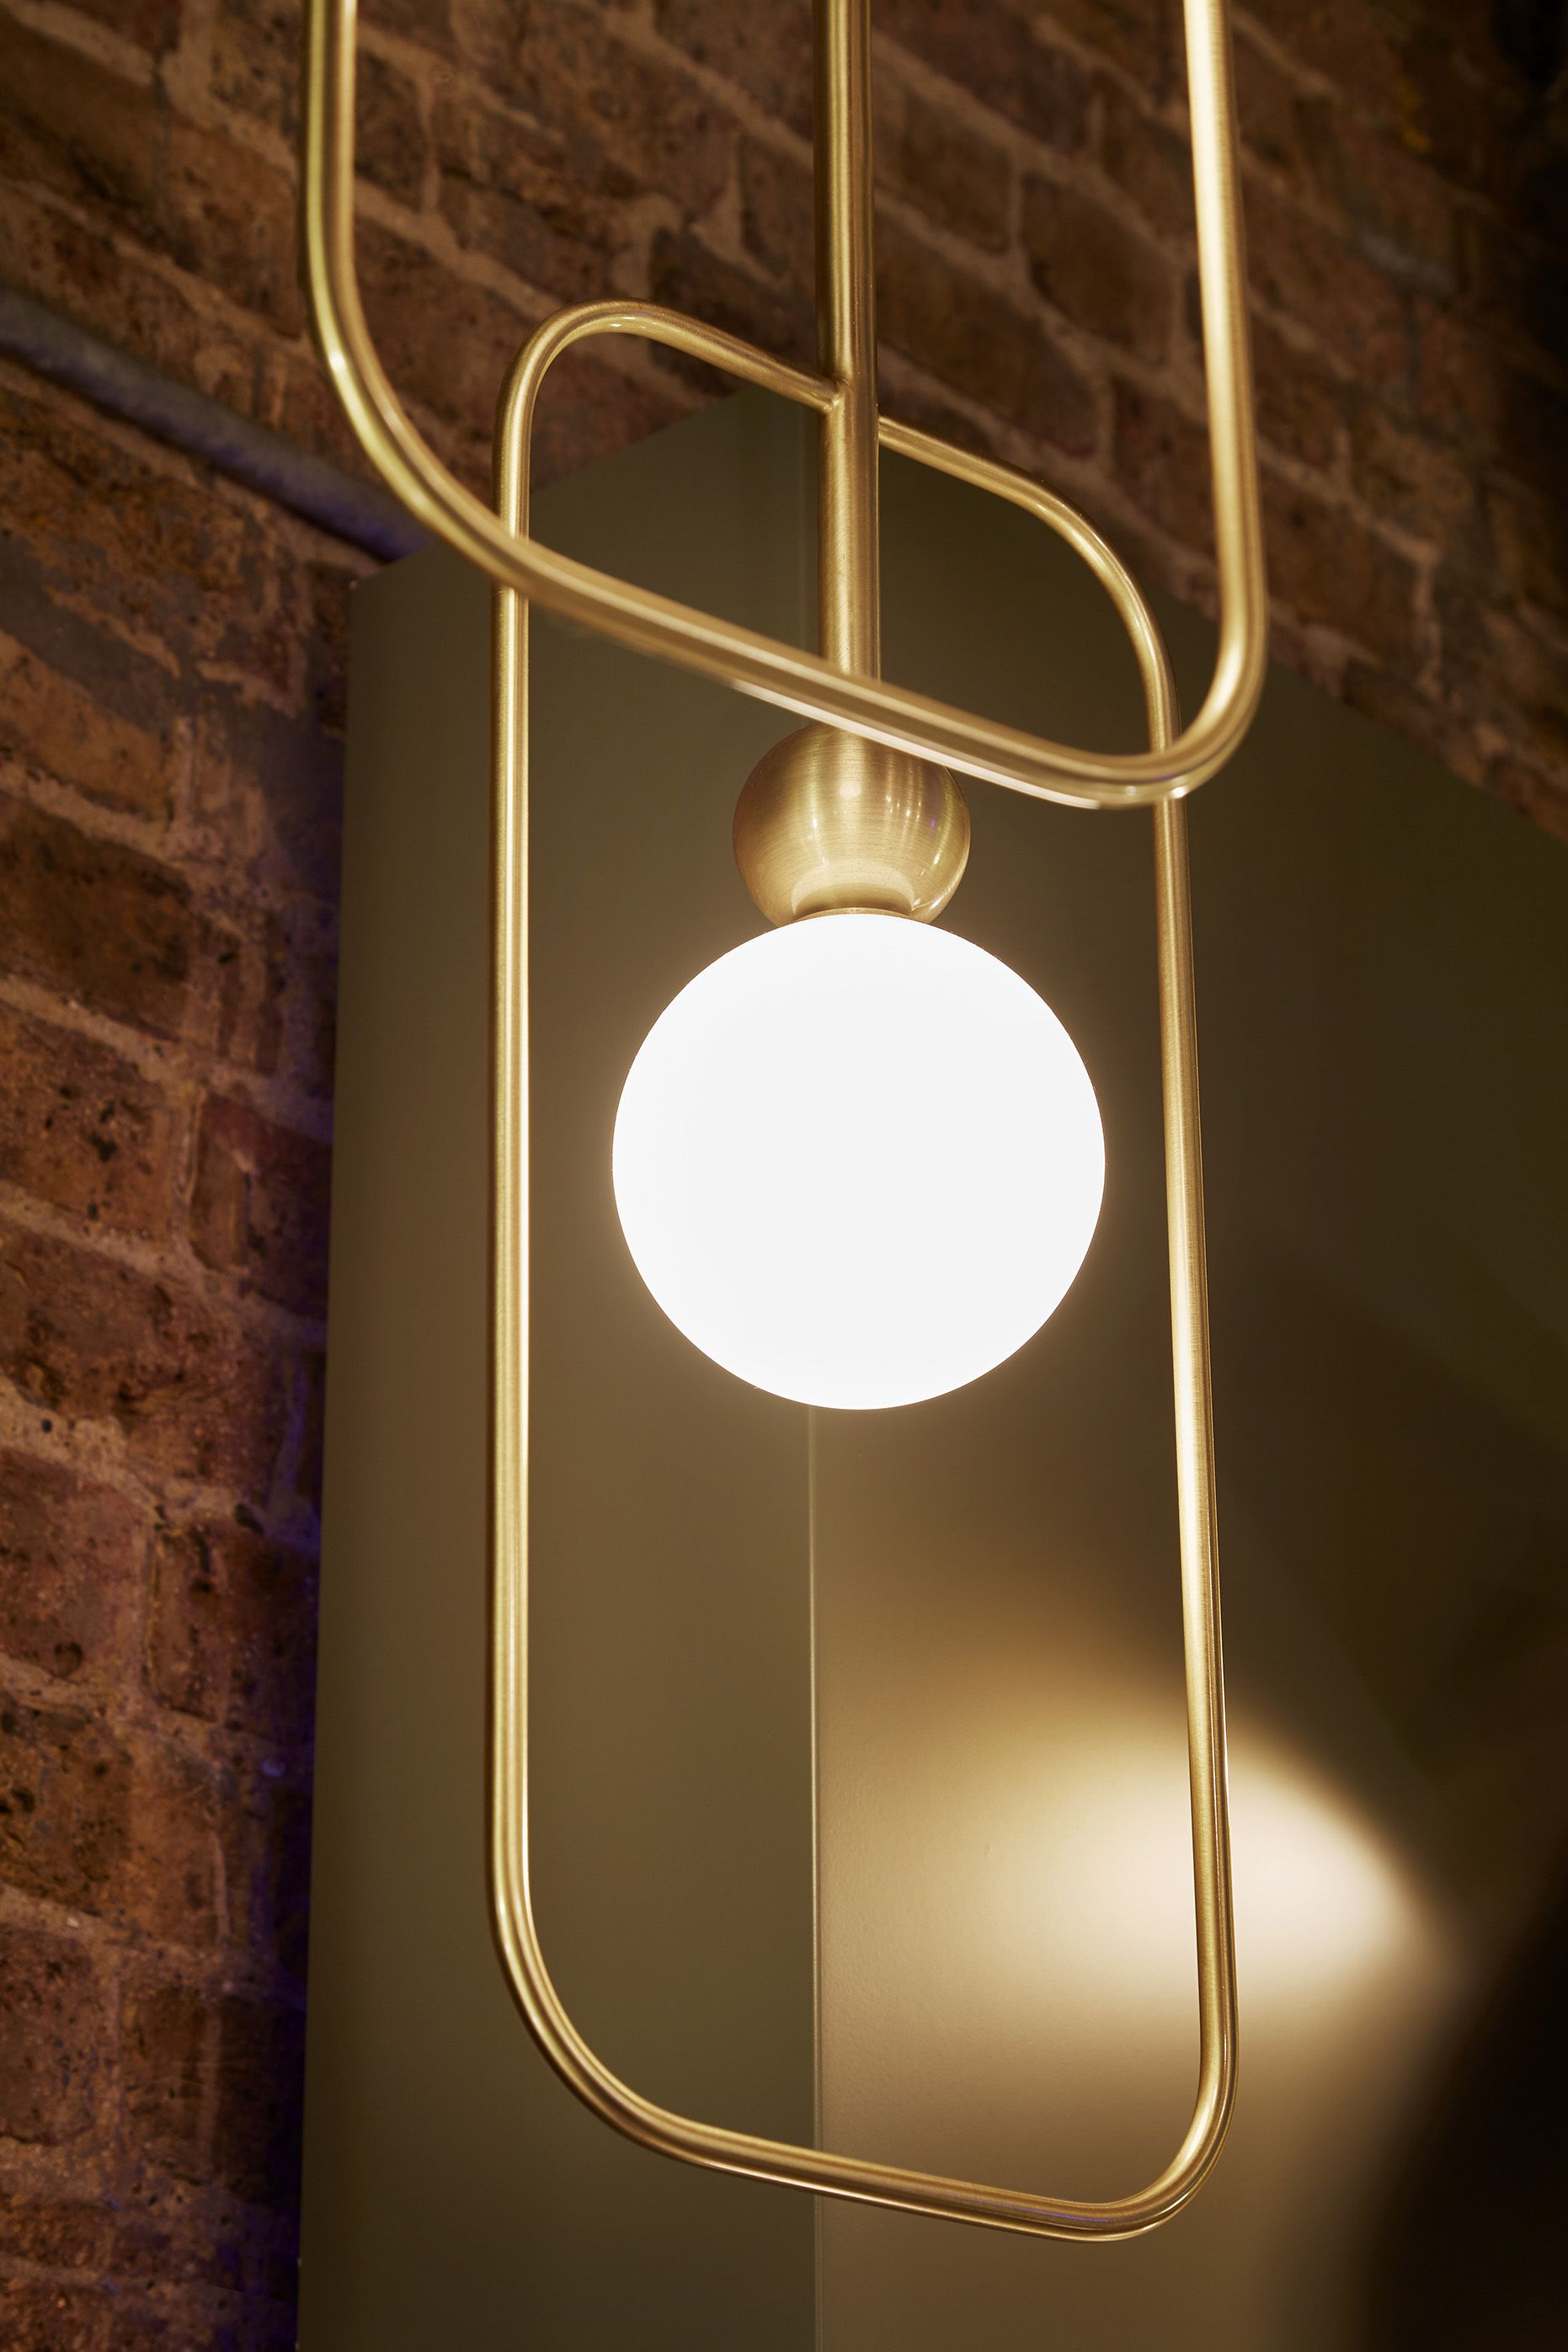 Imagin Lighting S Focus Is To Design Manufacture And Supply